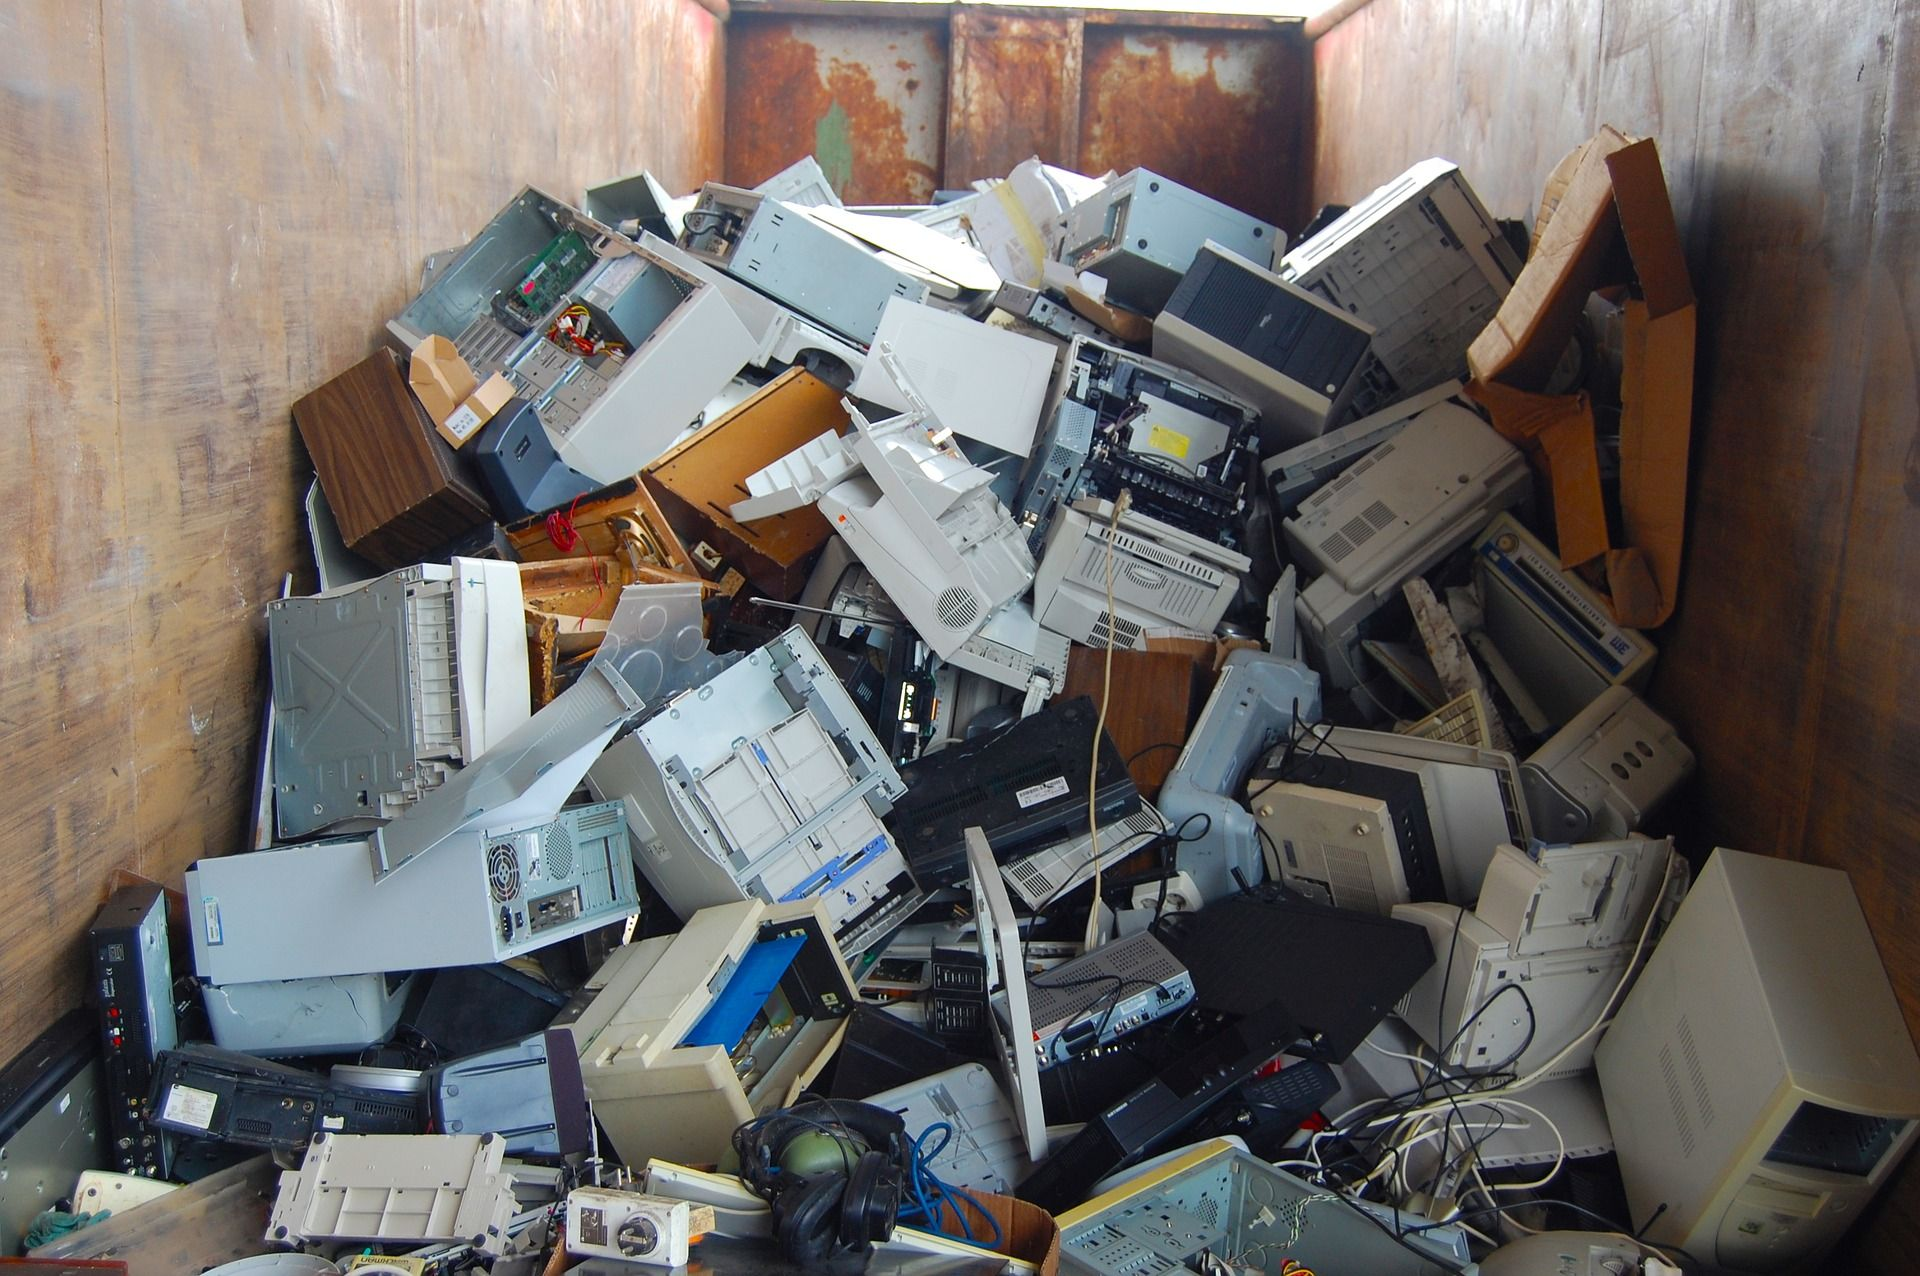 The Middle East and its e-waste problem